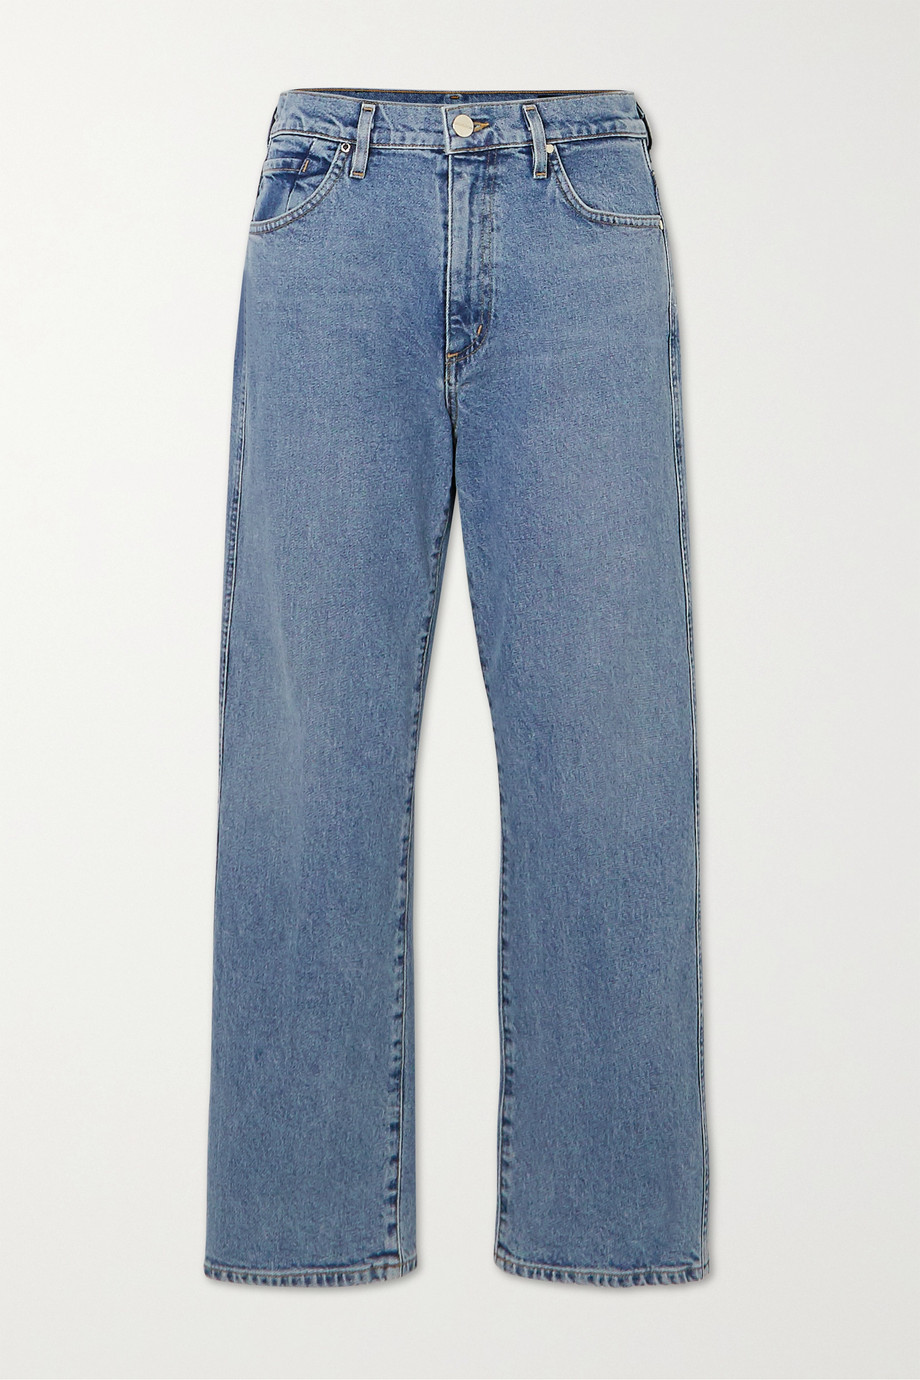 GOLDSIGN + NET SUSTAIN The Cropped A high-rise straight-leg jeans